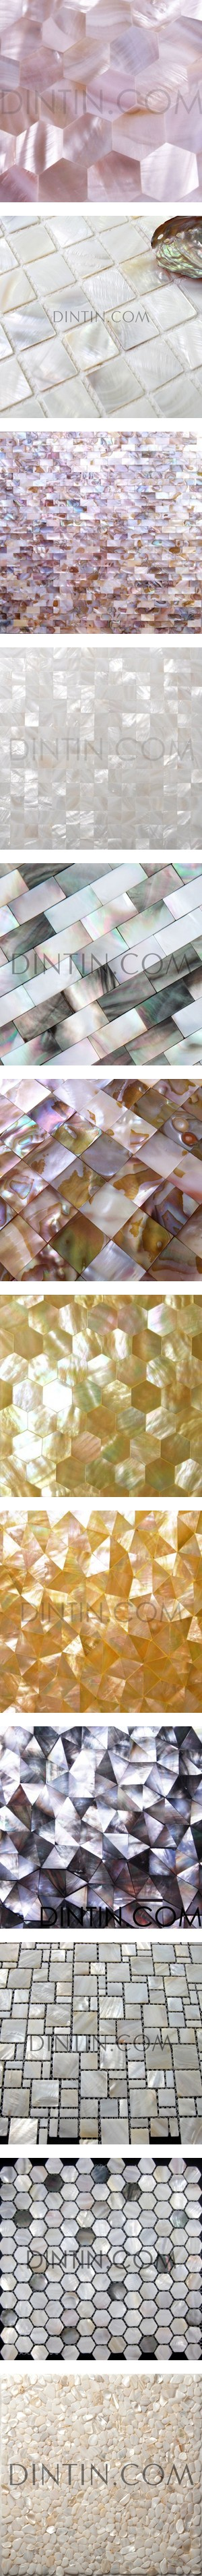 Shell Tiles by dintincom on Polyvore featuring women's fashion, modern organic products, tiles, wall, jewelry, mosaic jewelry, mother of pearl jewelry, colorful jewelry, tri color jewelry and multicolor jewelry